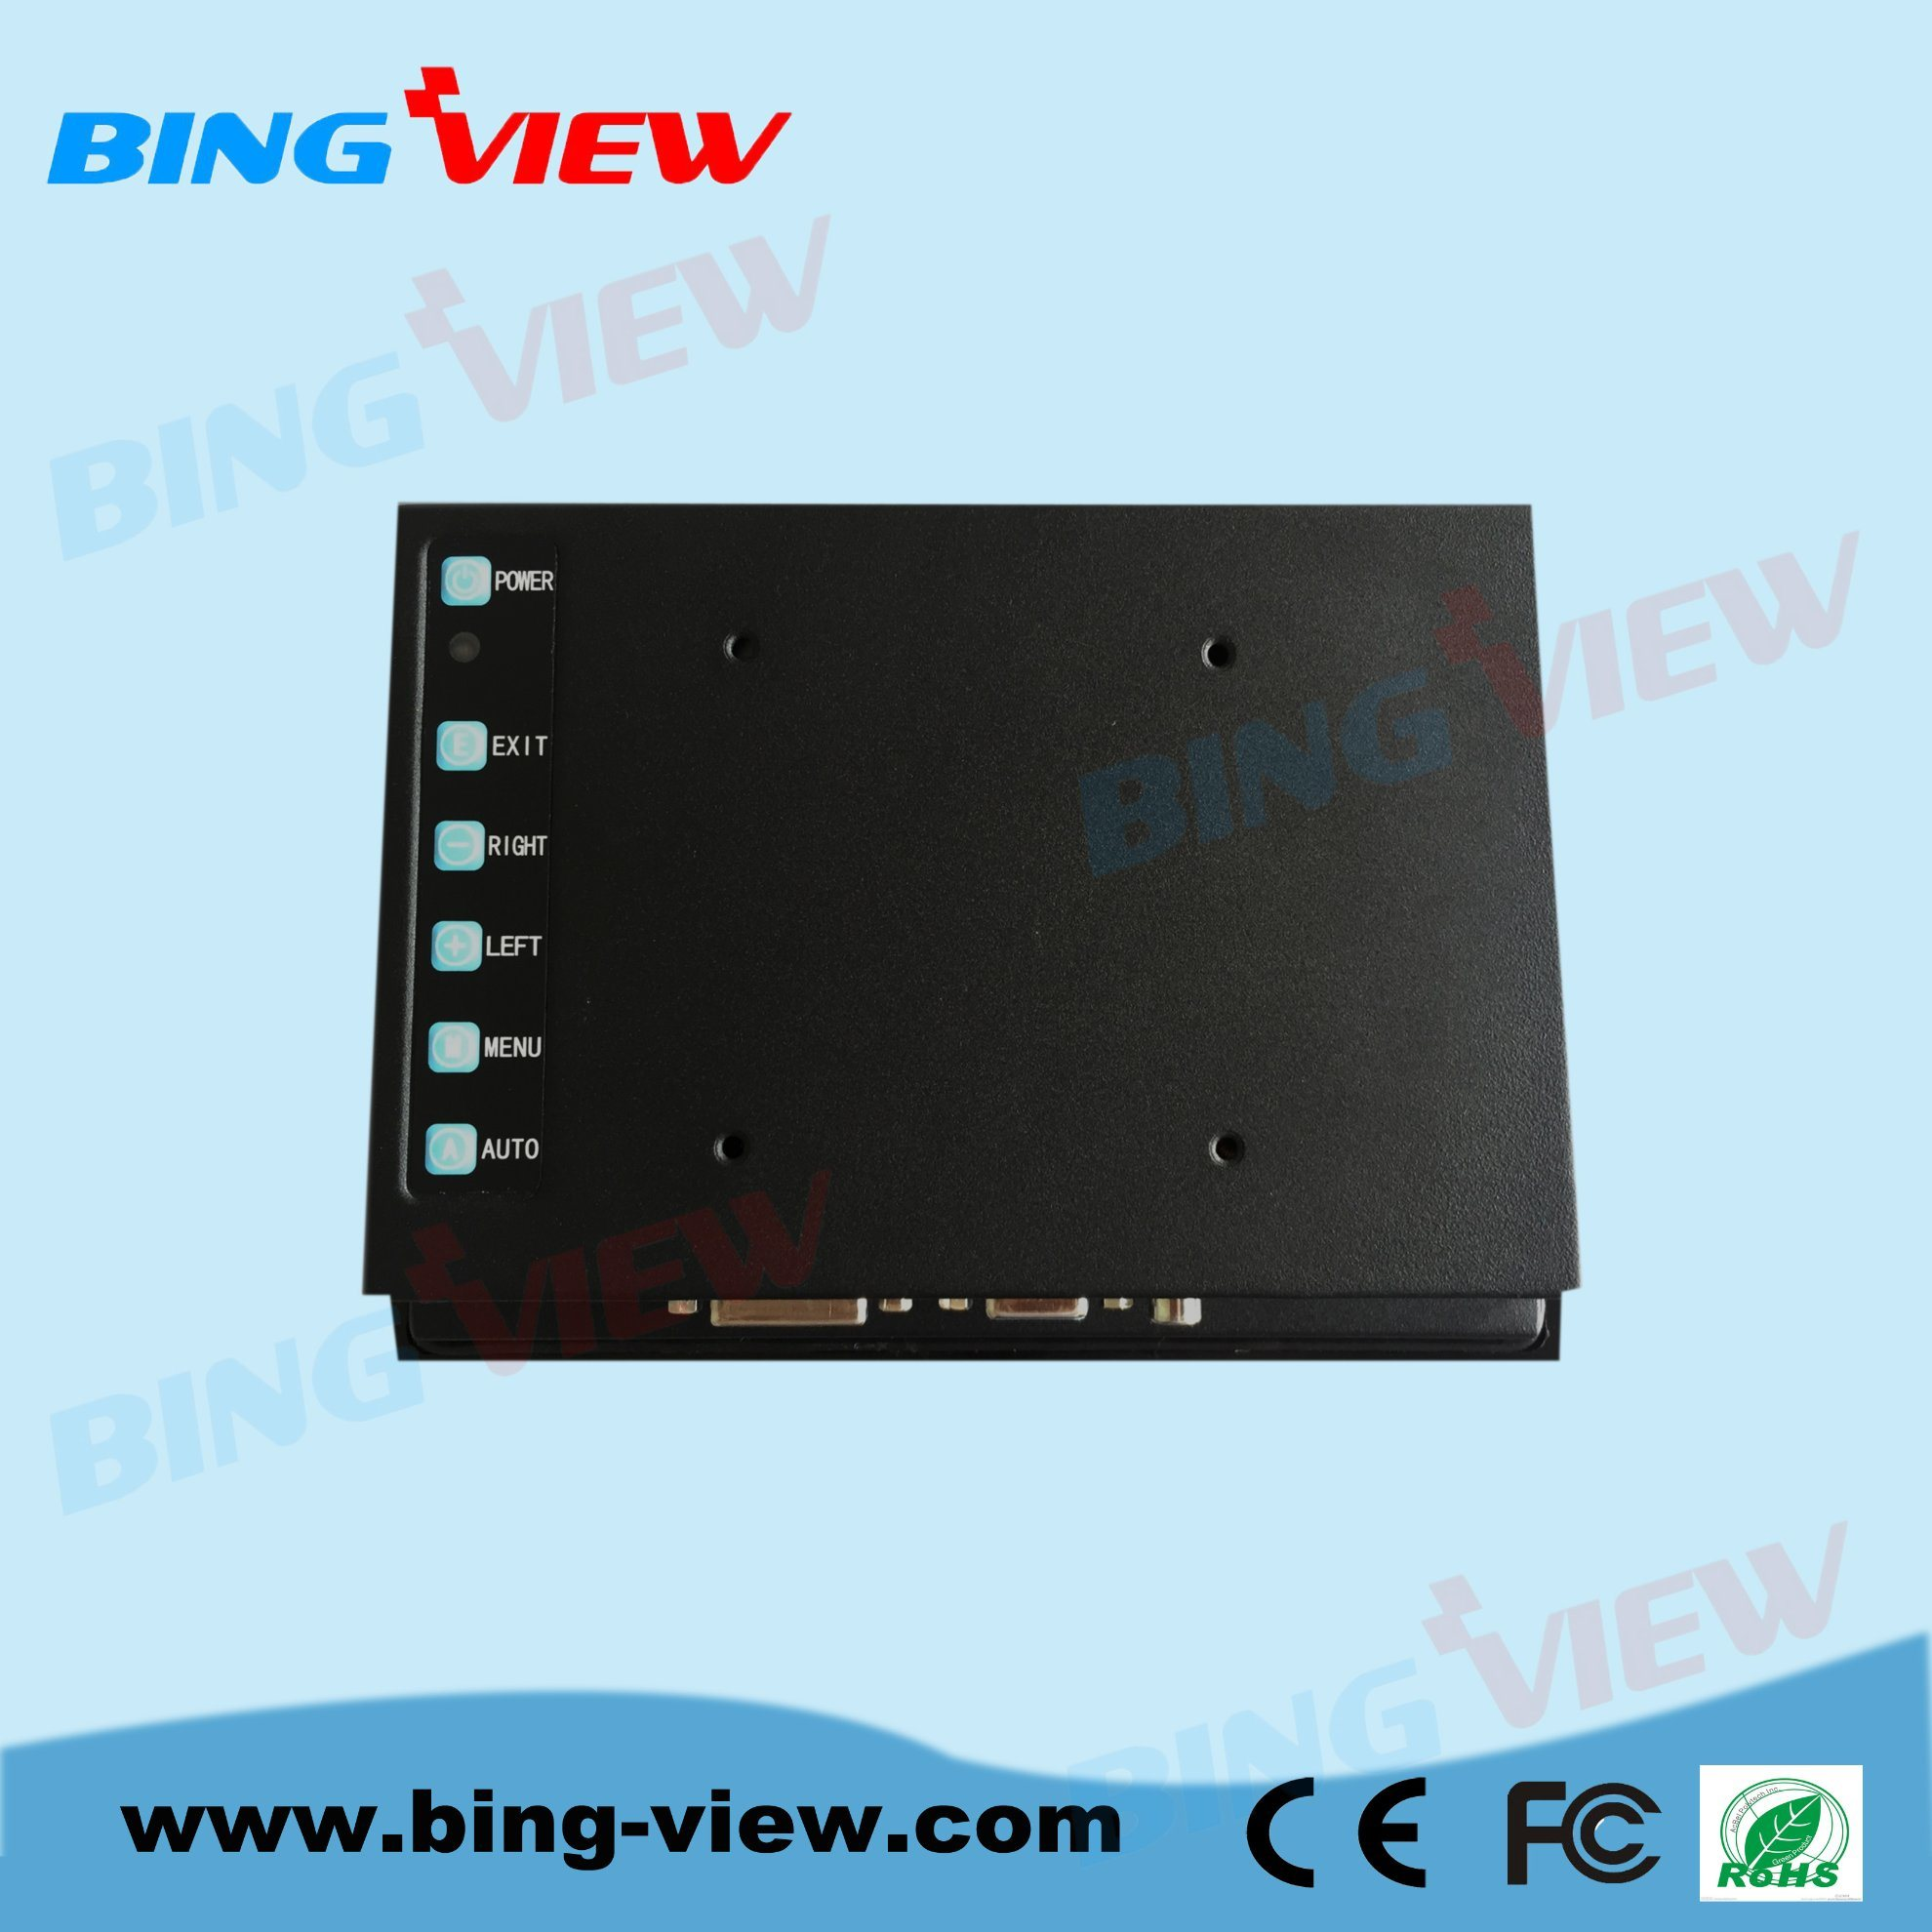 """12.1 """"10 Points Touch Screen Display with Pcap Technology for Industrial Automation Monitor"""